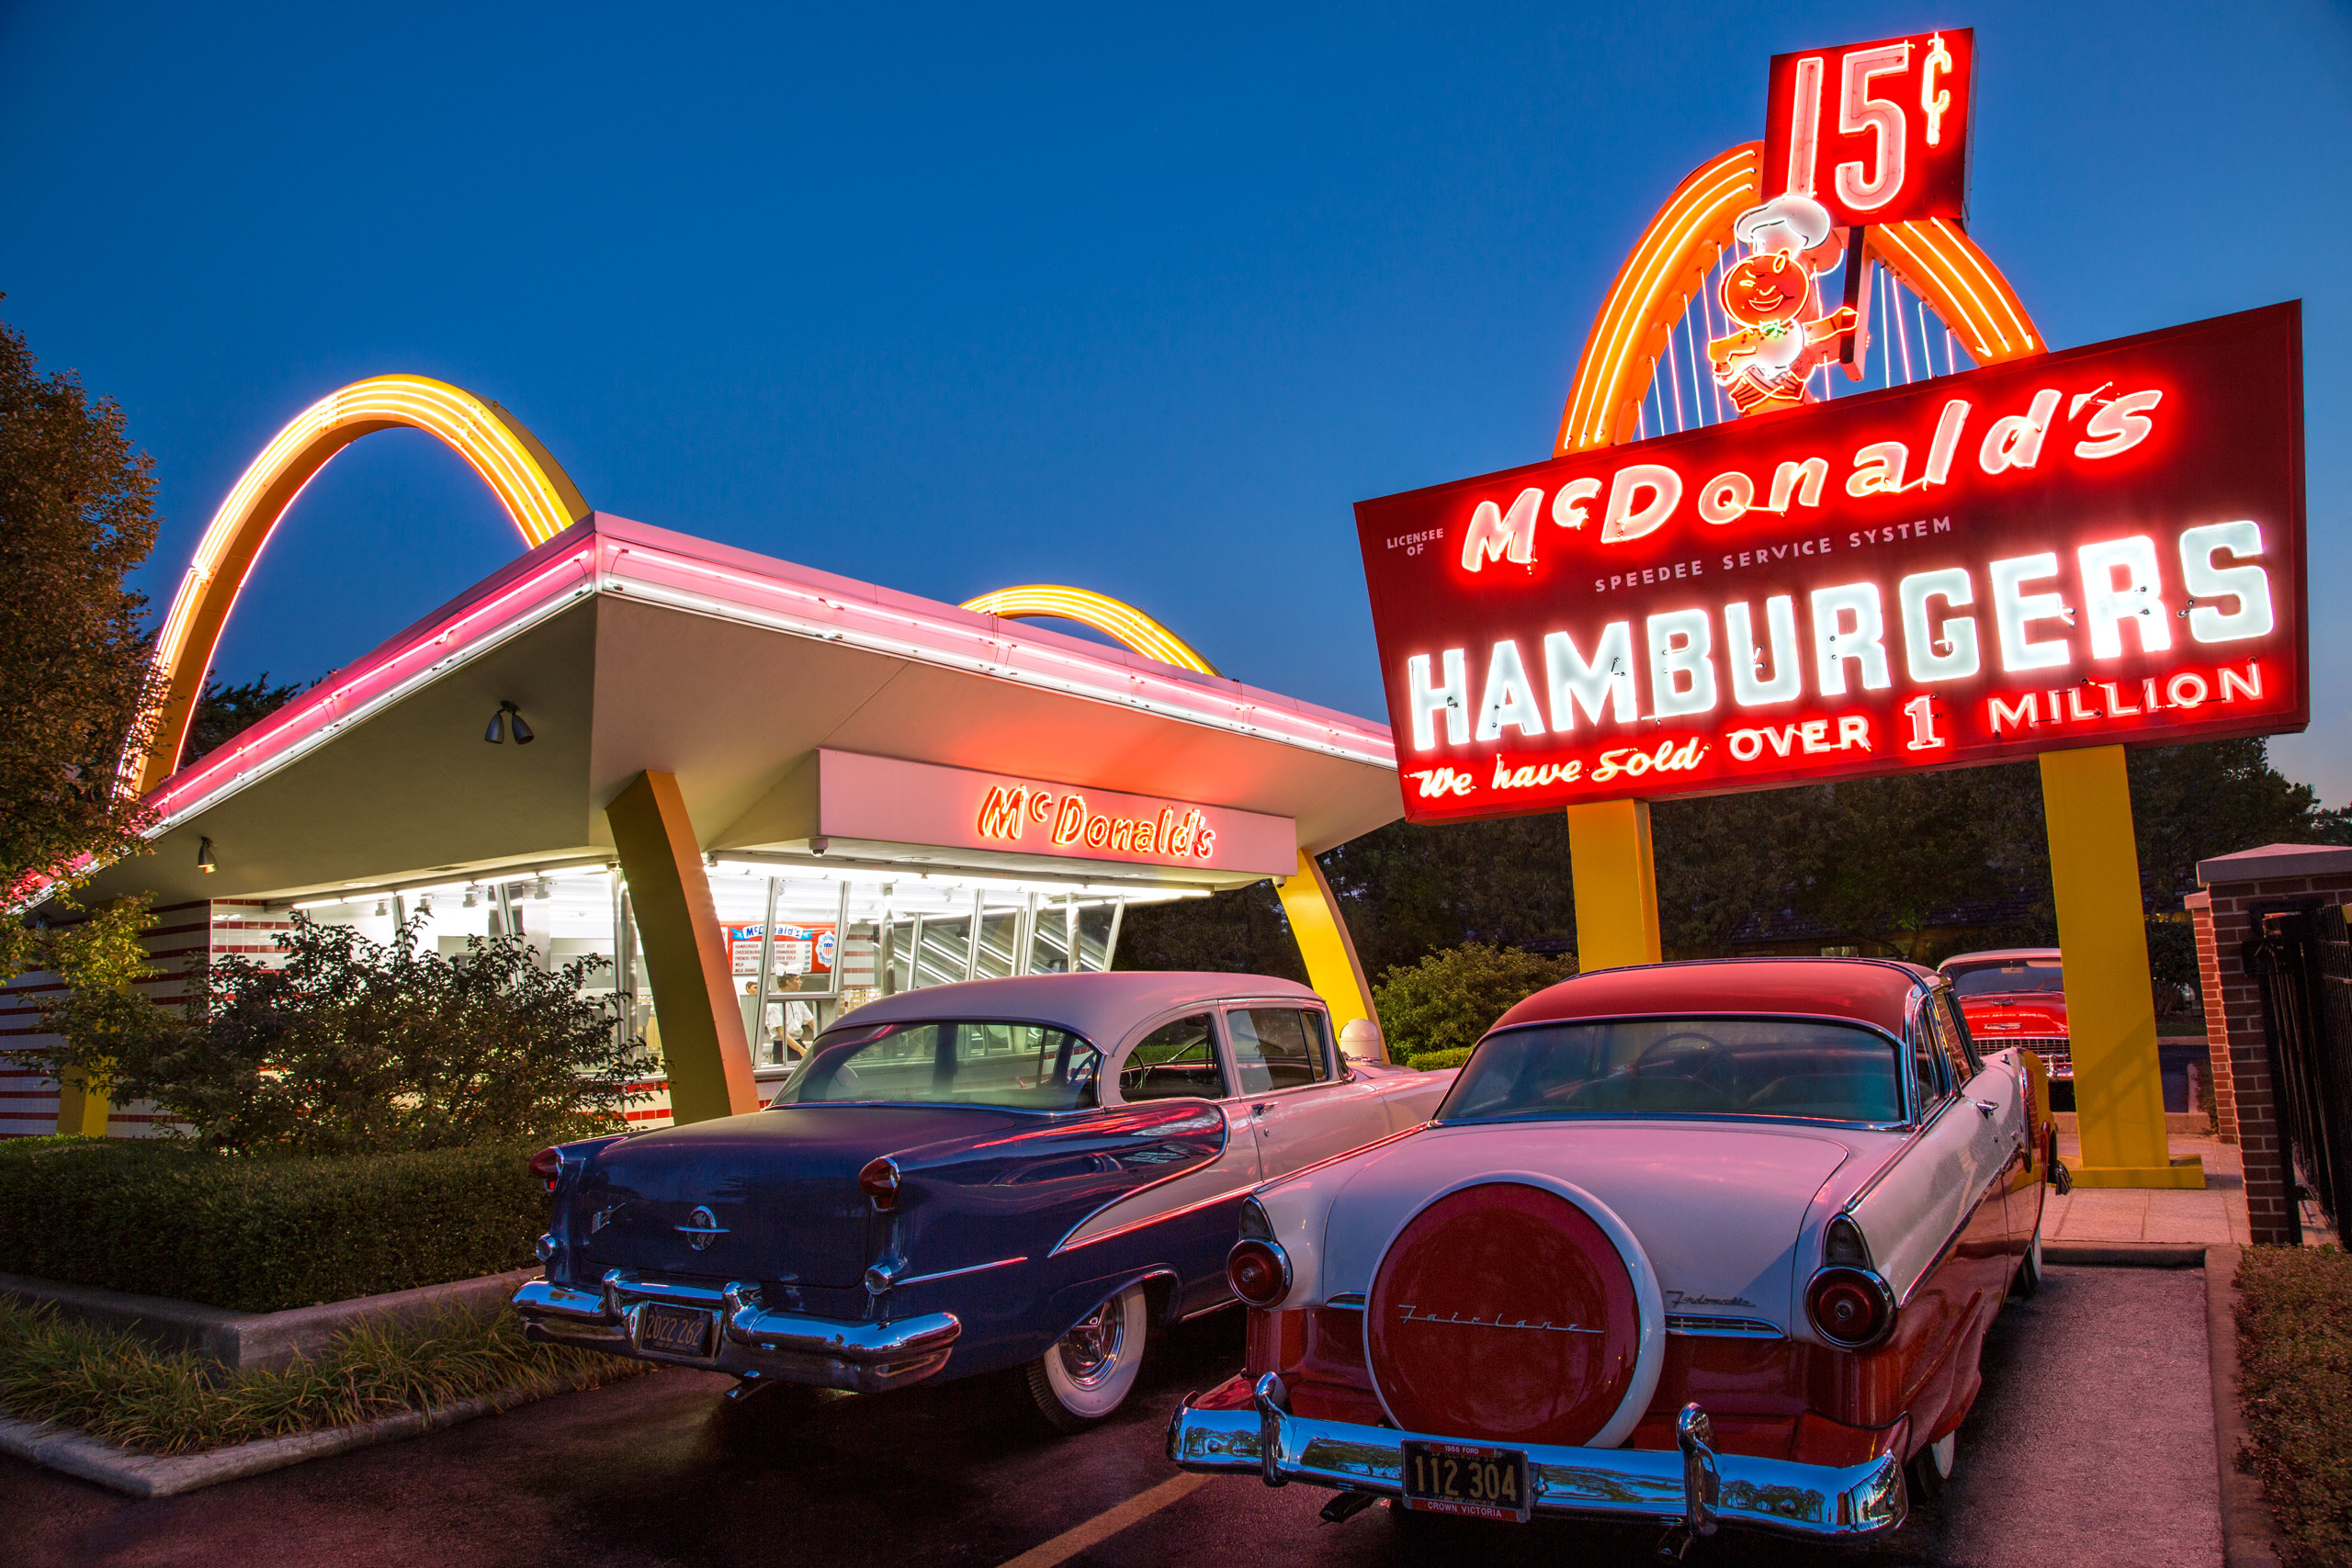 Ray Kroc's first McDonald's Restaurant in Des Plaines, Illinois is restored to its original form and reopens on May 21, 1985 as the McDonald's #1 Restaurant Museum.